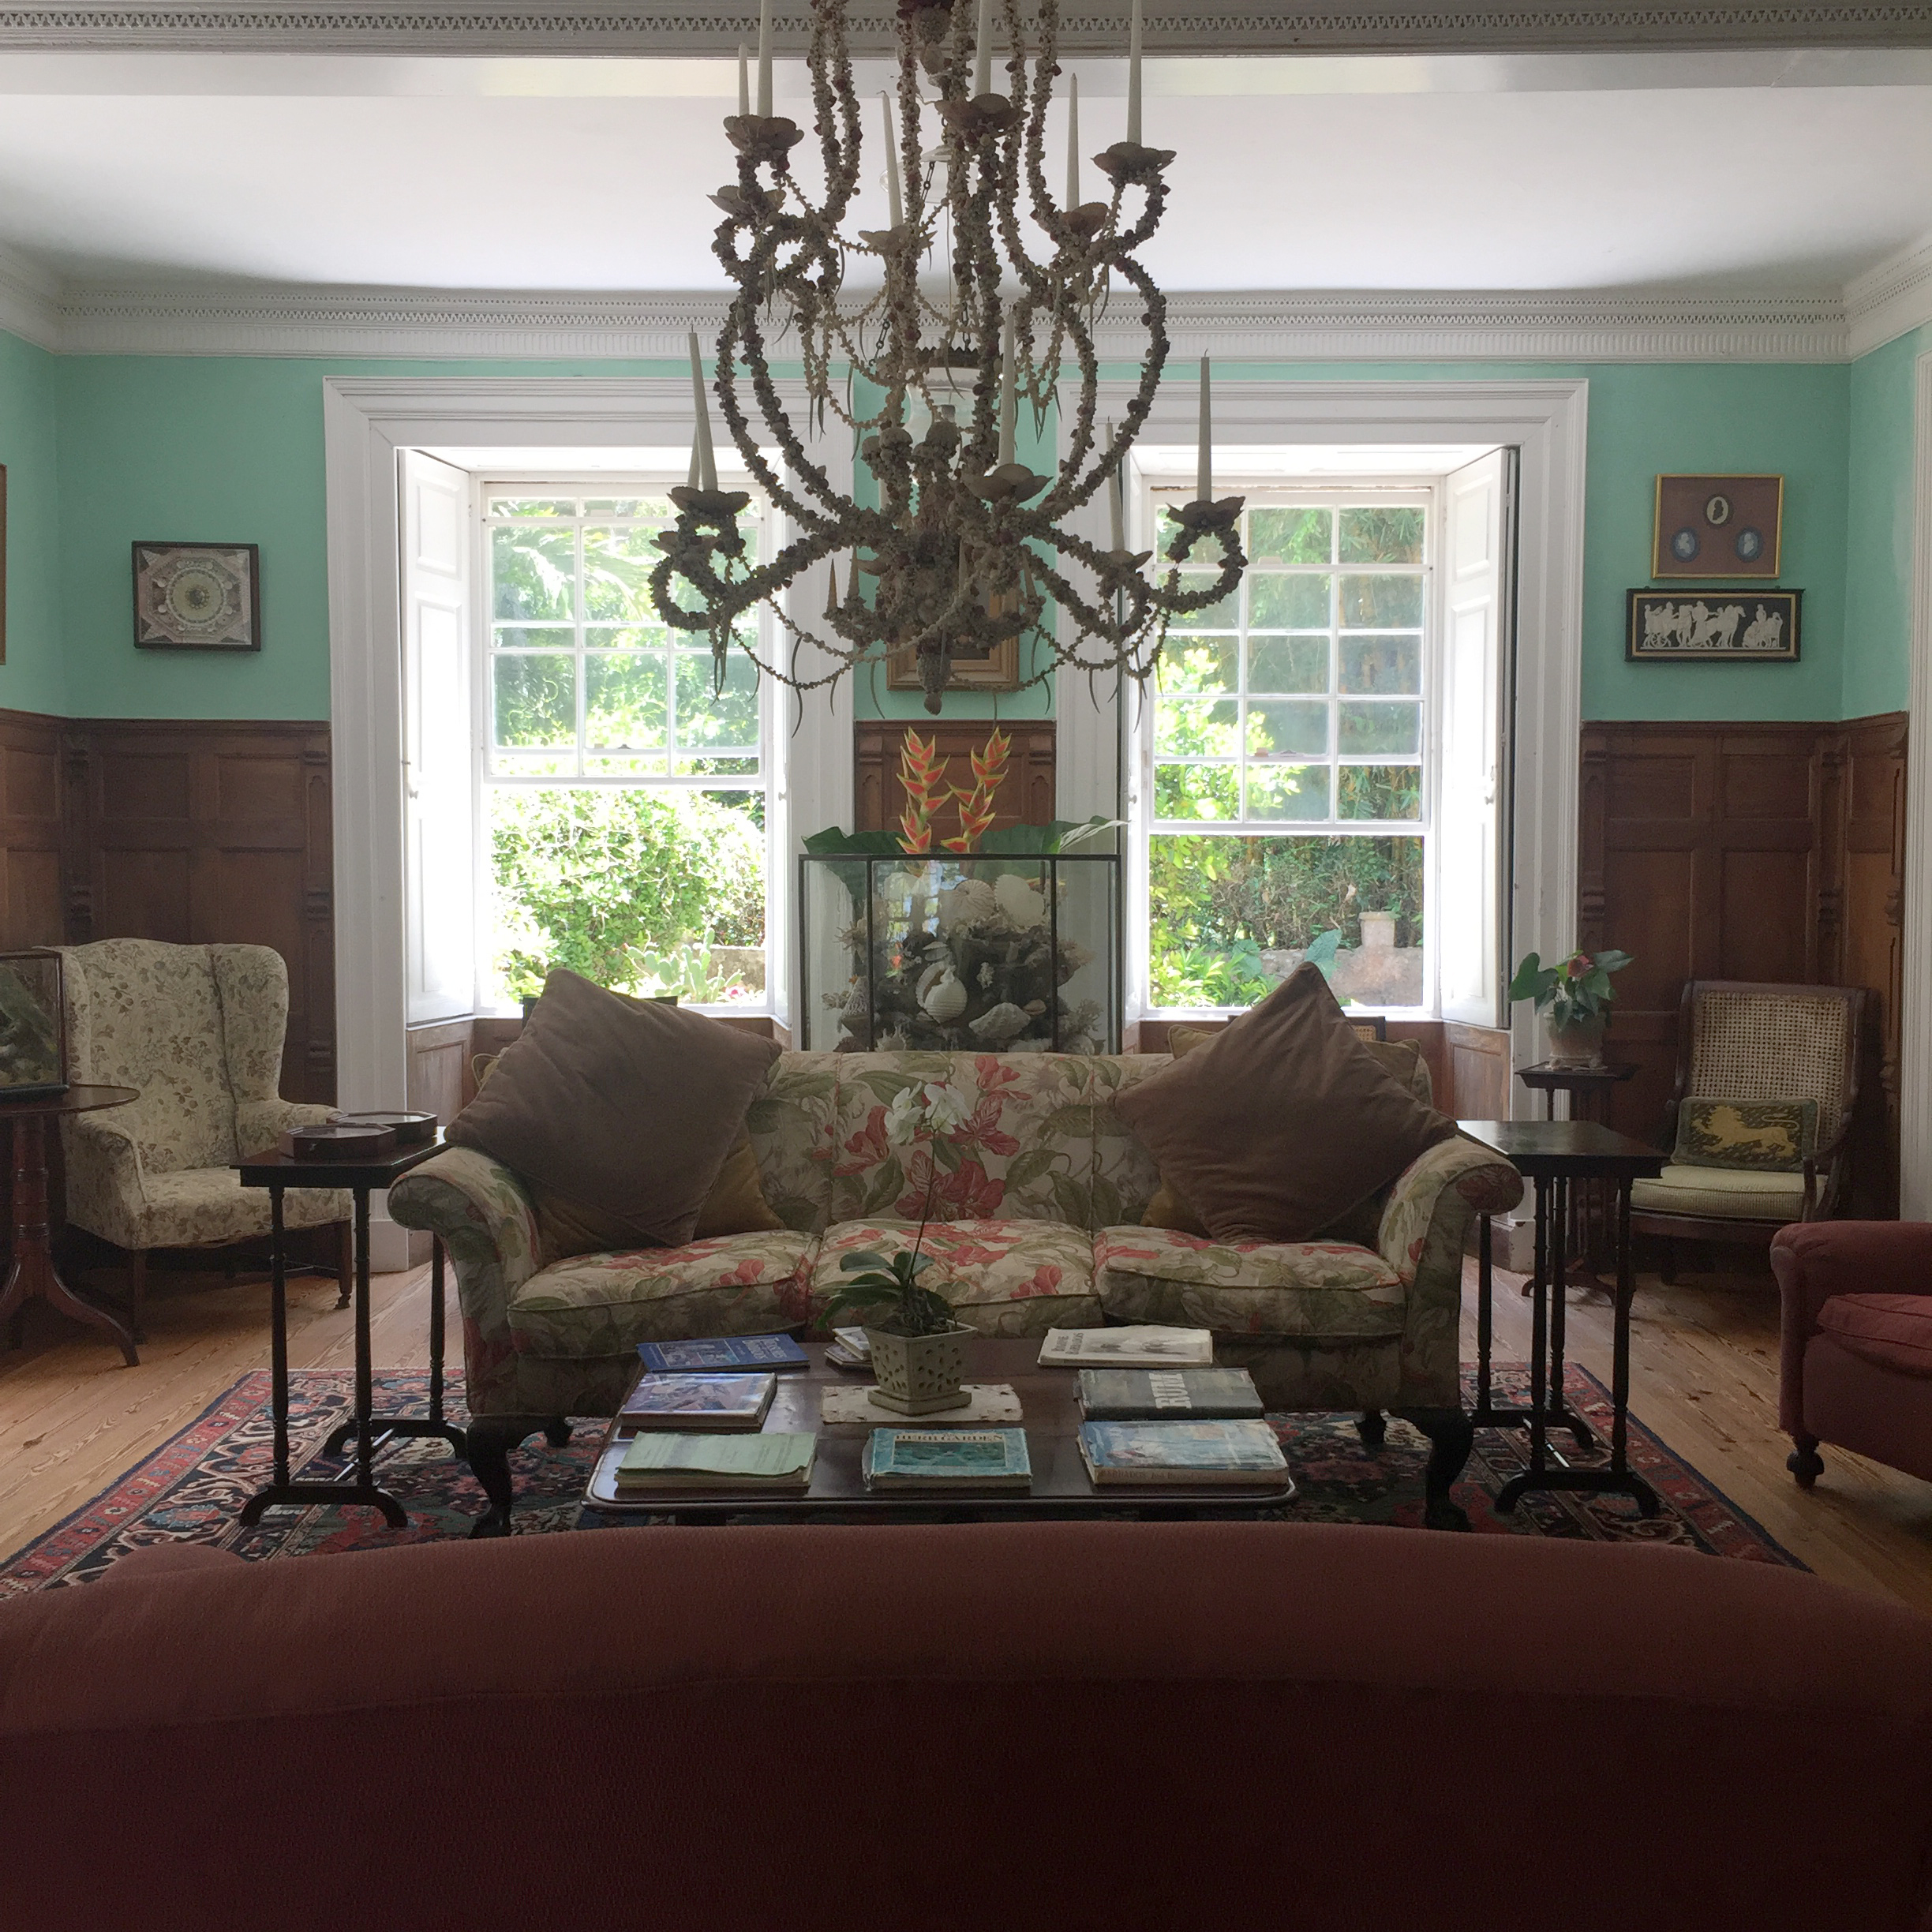 Tiffany blue drawing room with seashell chandelier.